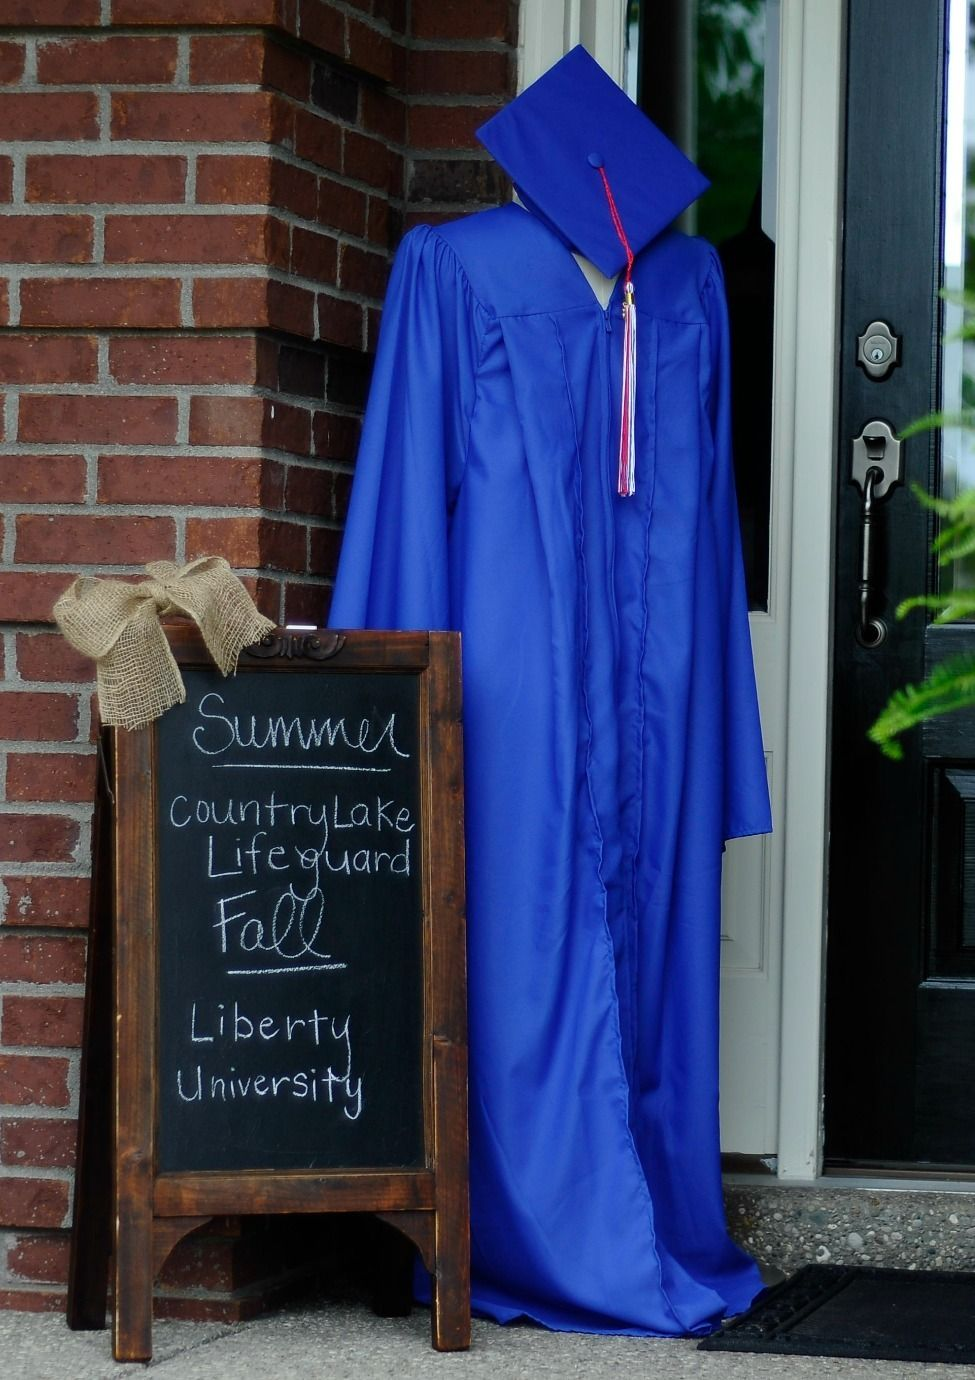 10 Easy Graduation Party Ideas in 2018 | graduation | Pinterest ...